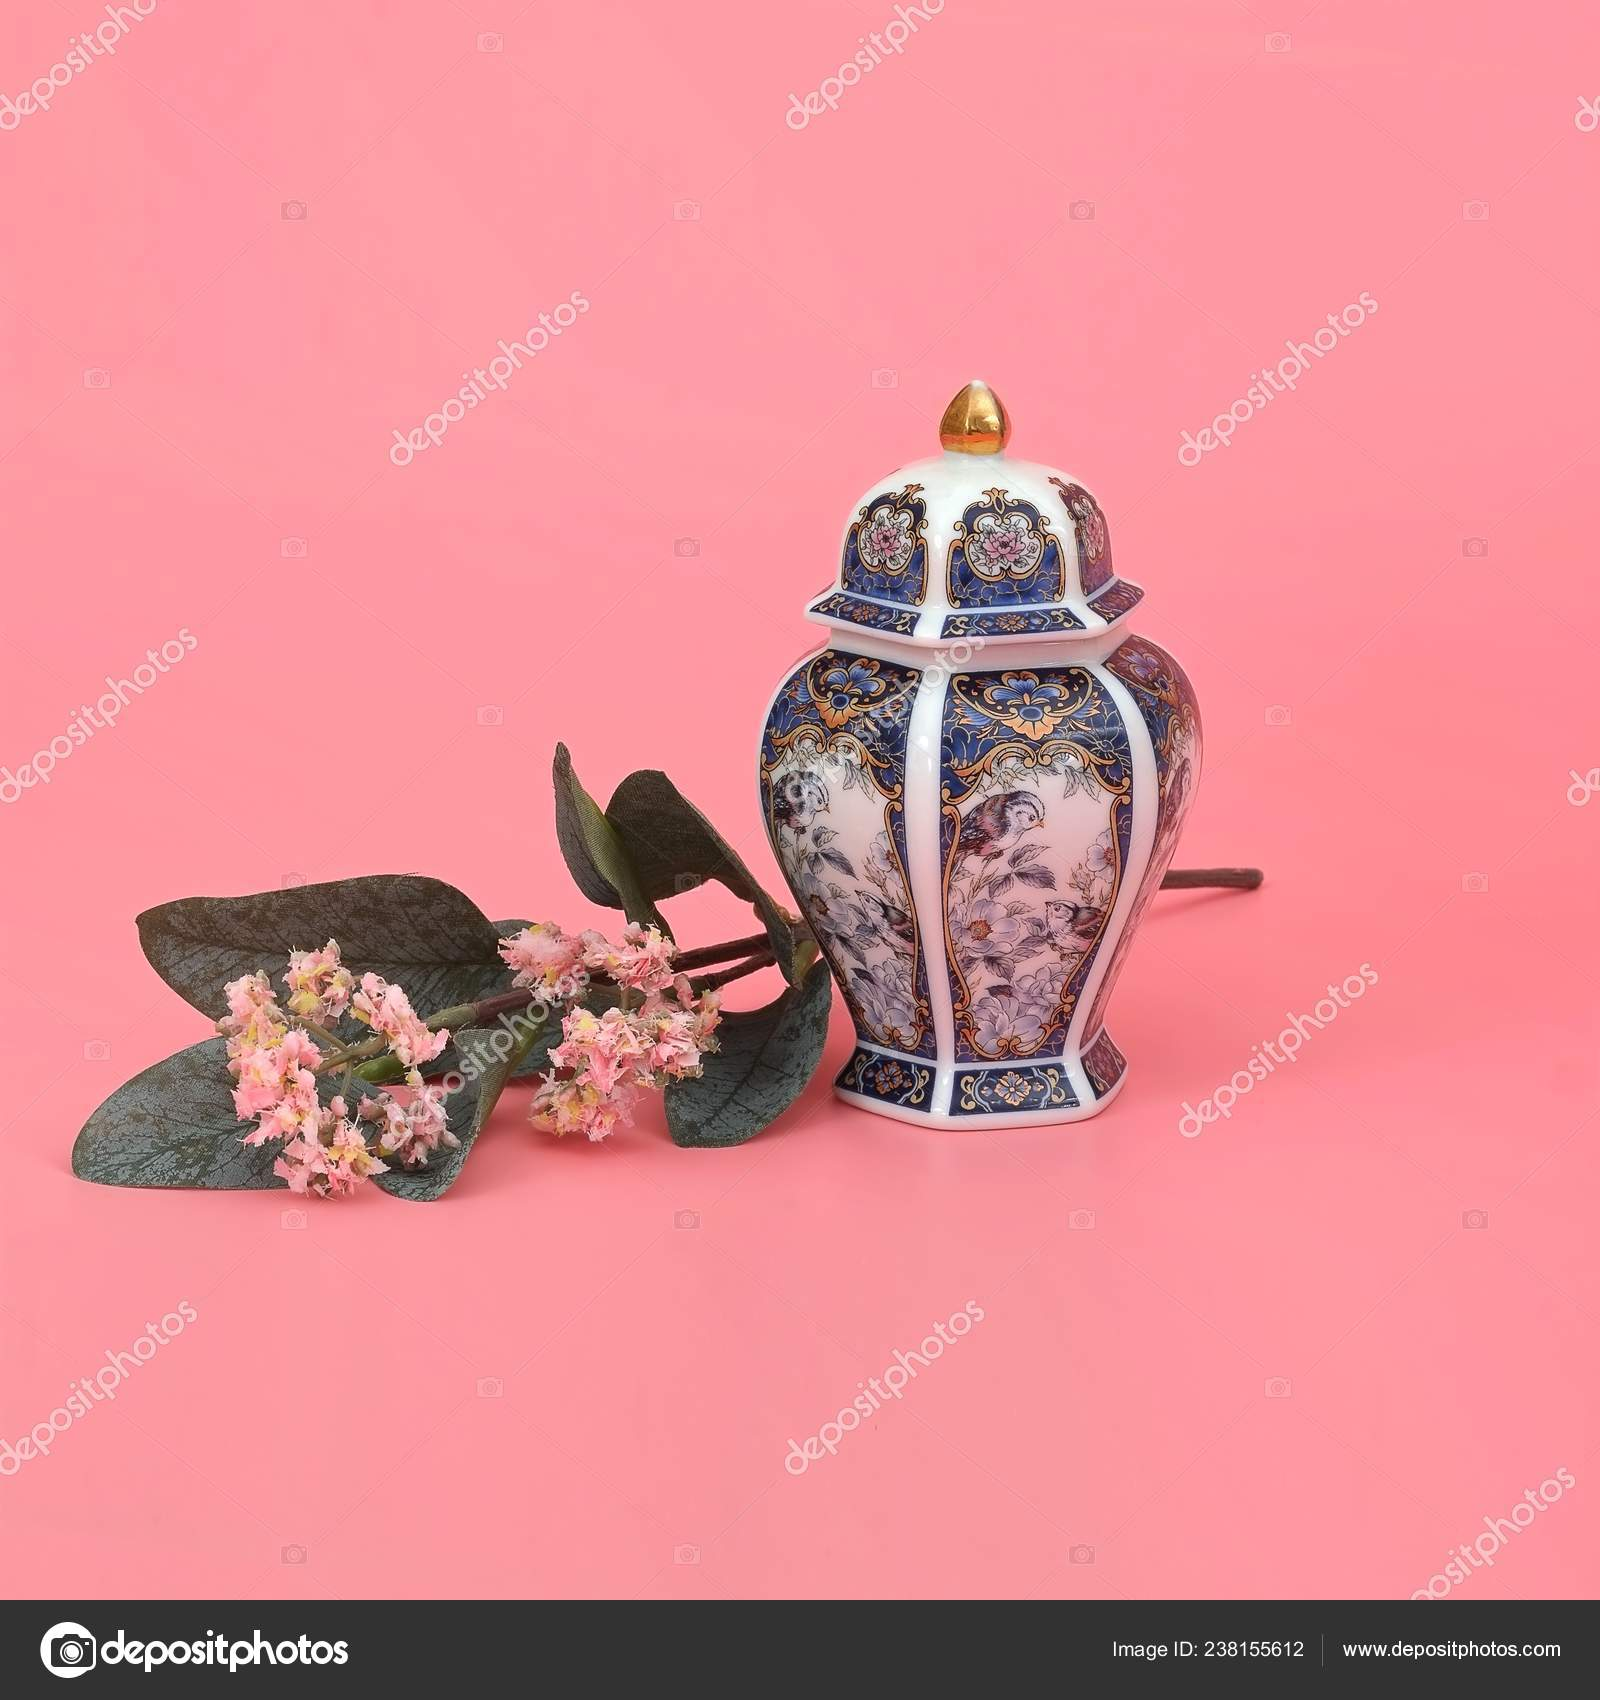 Classic oriental vase with jasmine branch isolated on pink (coral) background